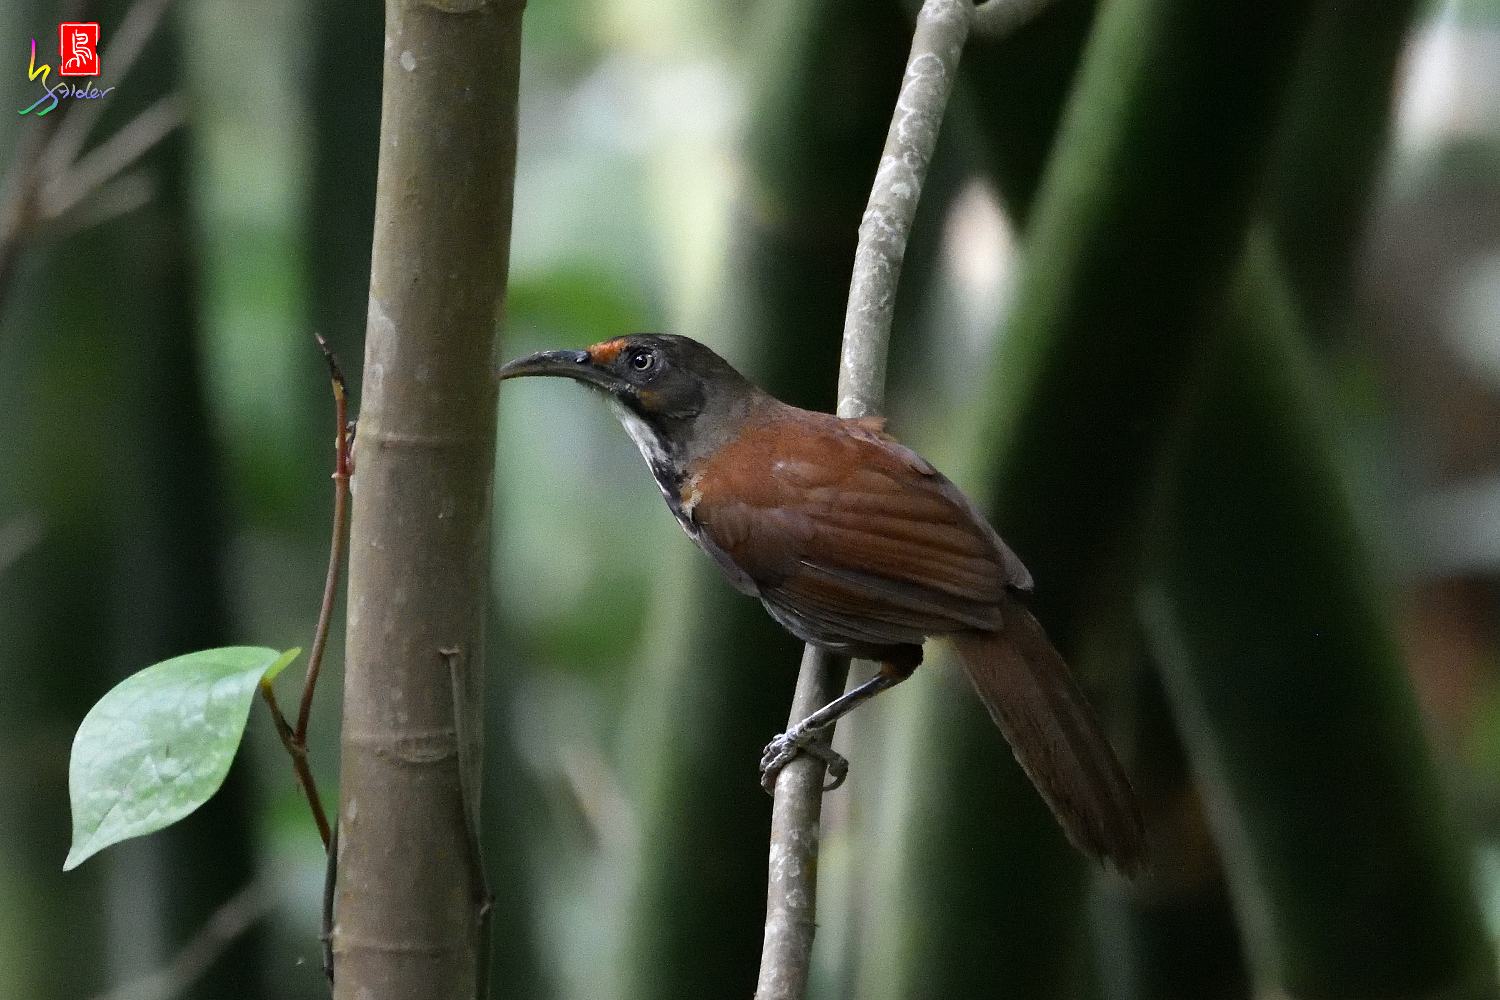 Rusty-cheeked_Scimitar-babbler_3250